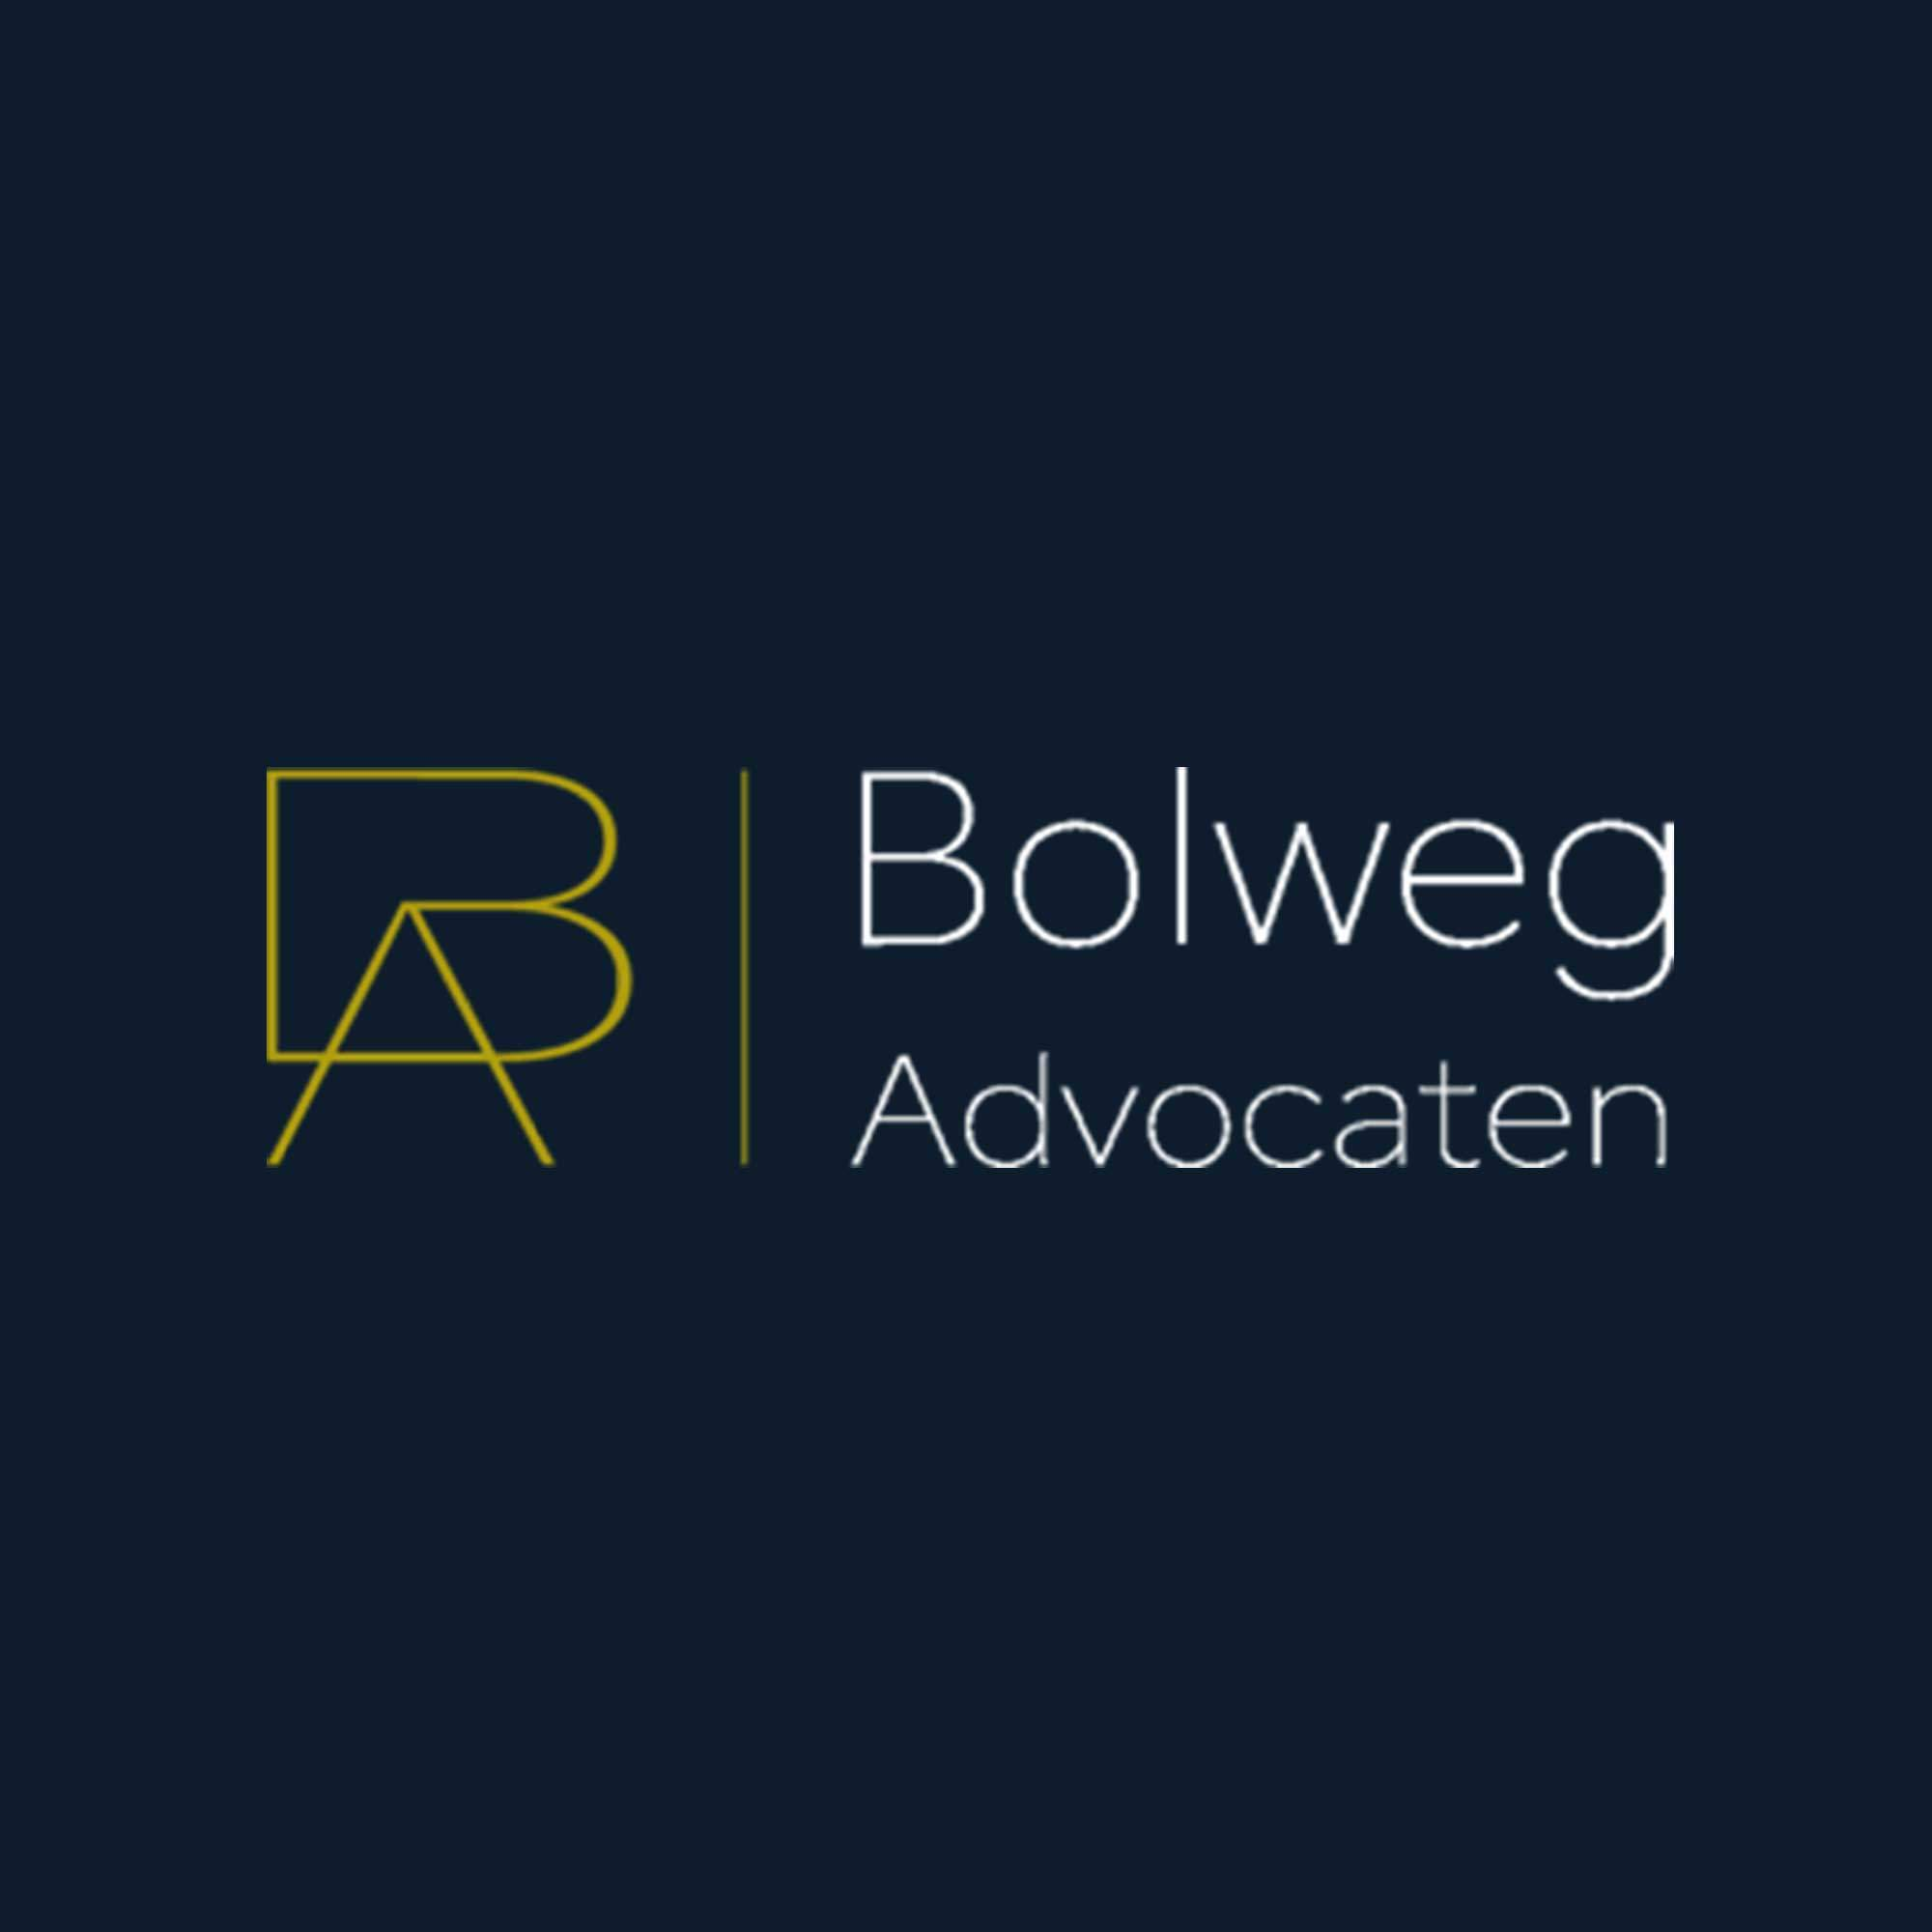 bolweg-advocaten-online-marketing-bureau-webdevelopment-haarlem-made-marketing-5